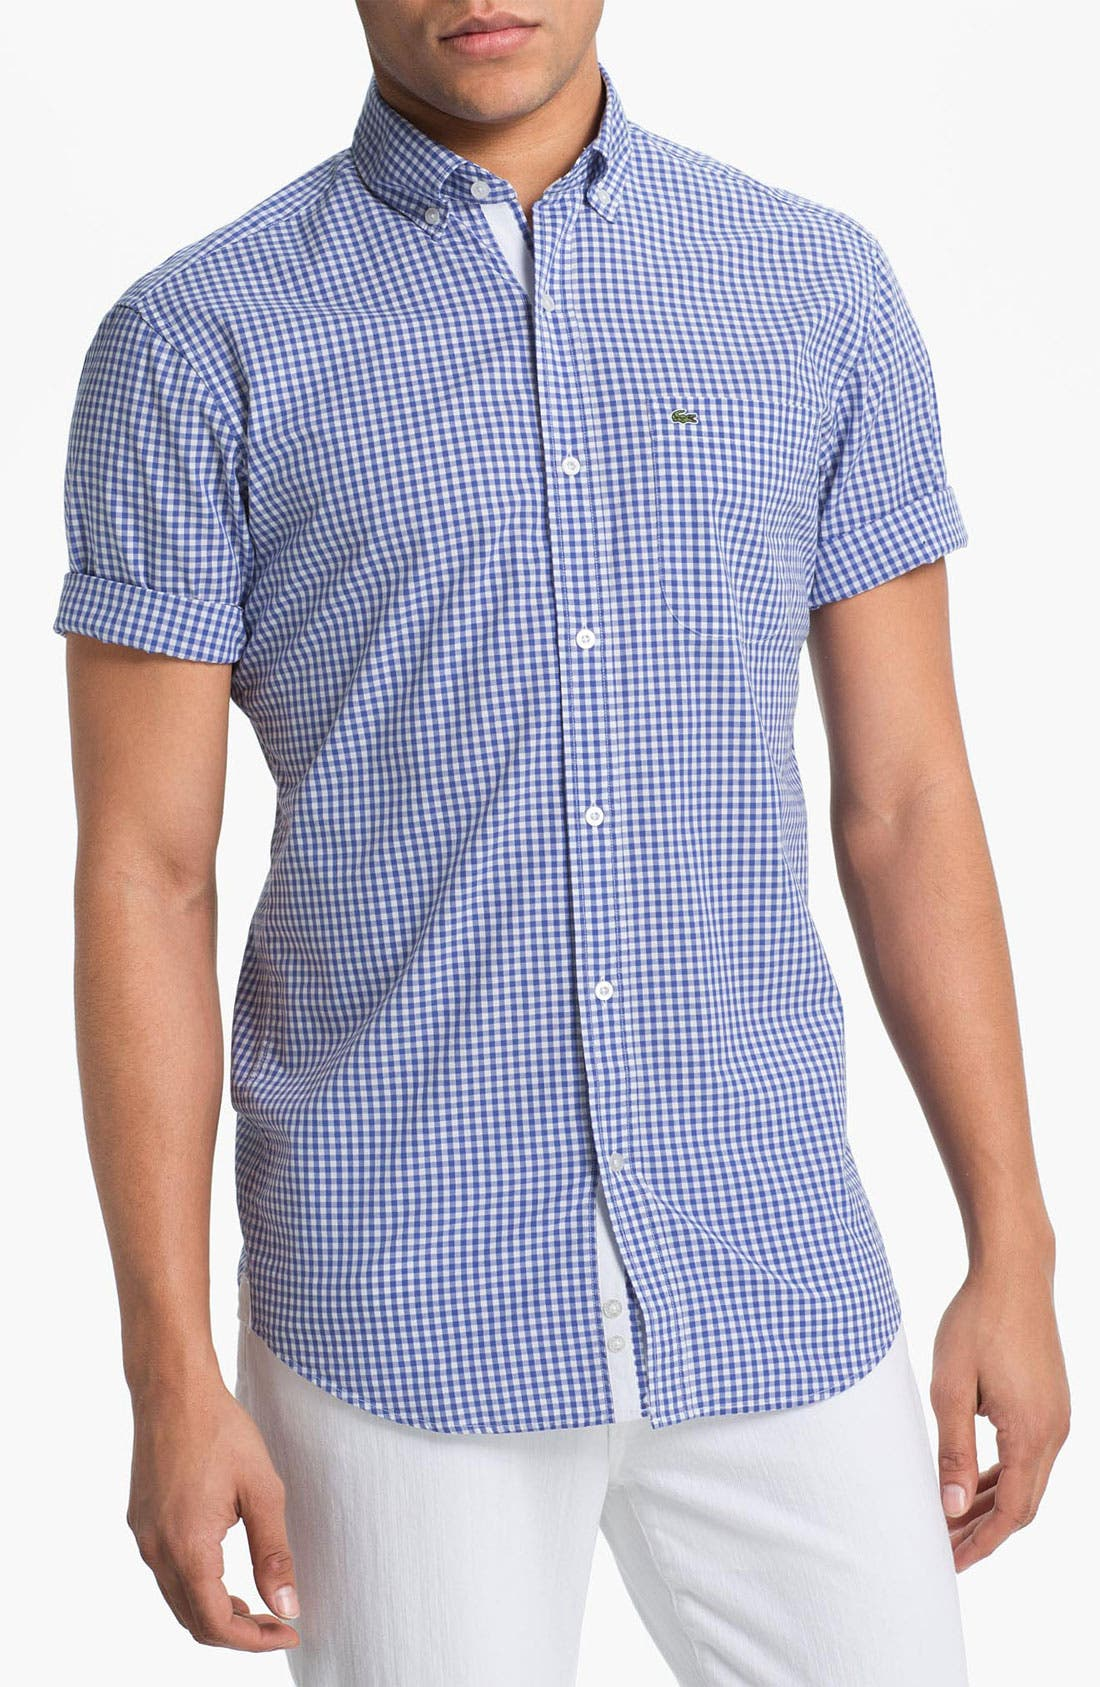 Main Image - Lacoste Short Sleeve Button Down Shirt (Tall)